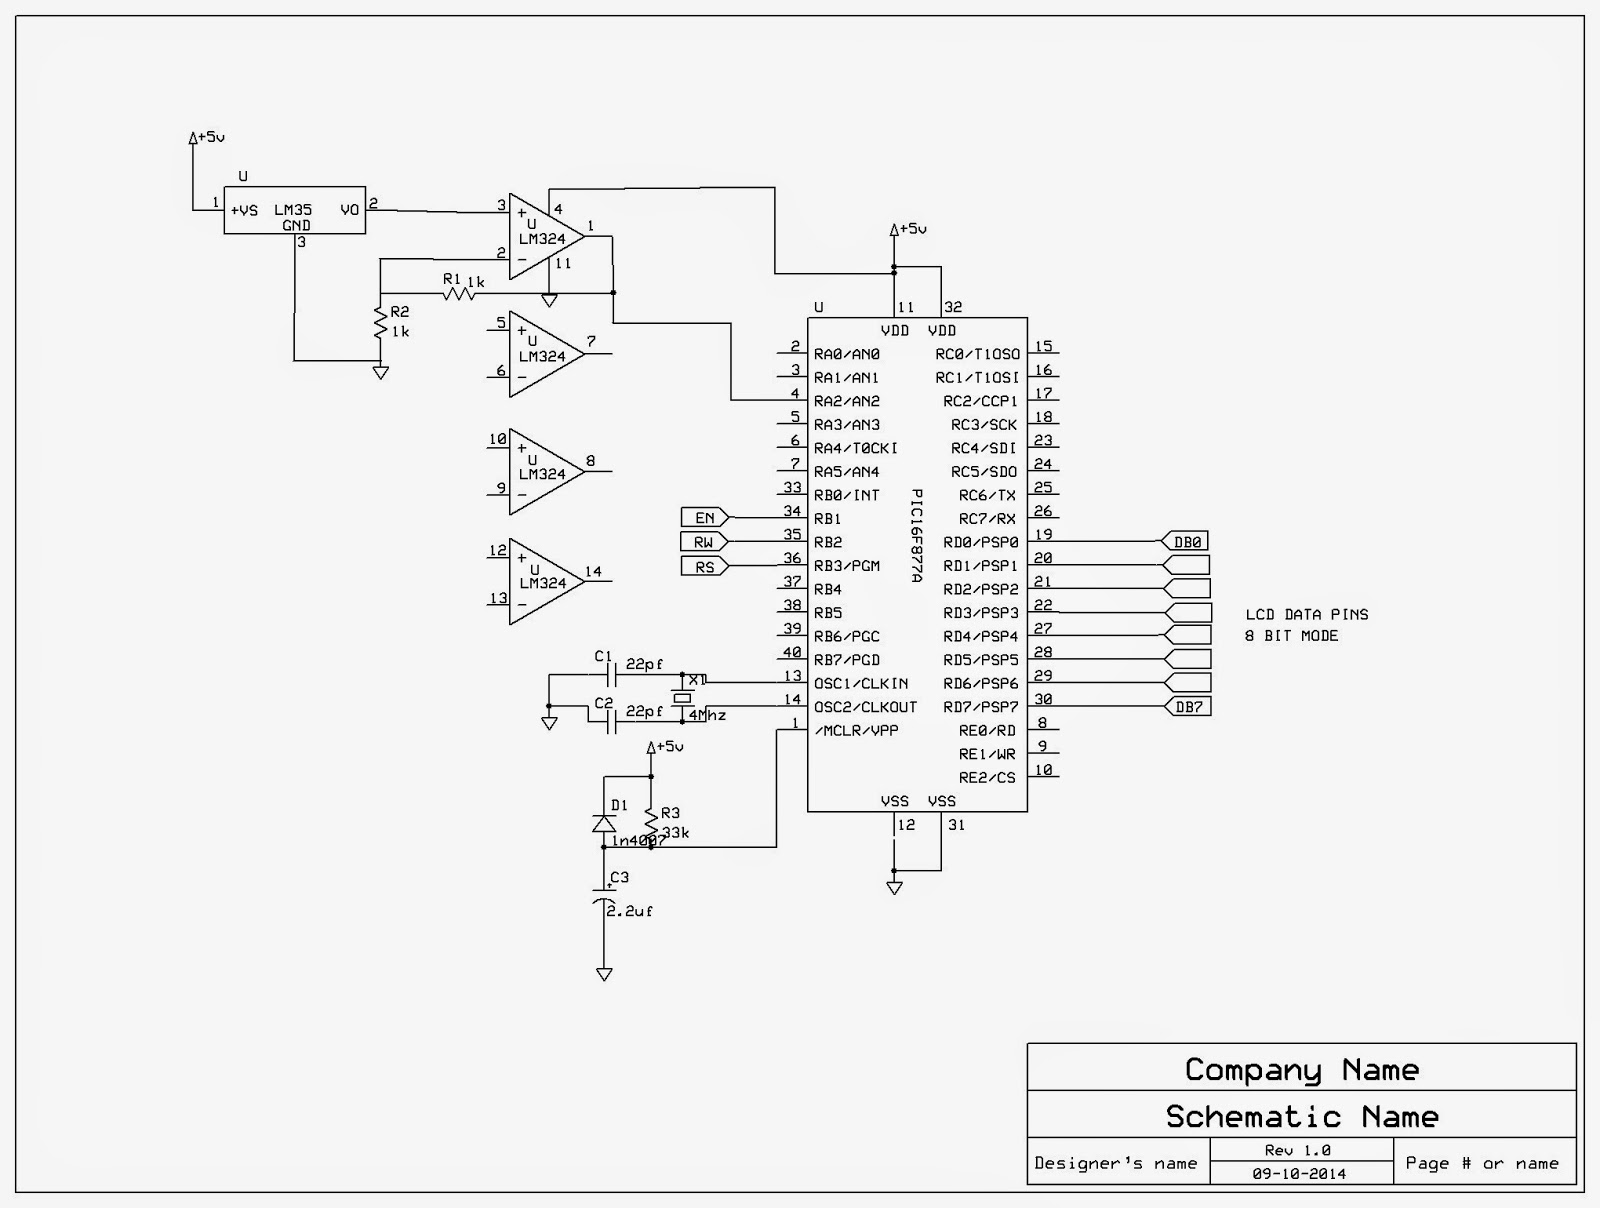 Pic Interface With Lm35 Pic16f877a Projects Electronic Thermometer Circuit Diagram The Hitech C Program For Digital Is As Given Below Explanation Of Can Be Found From Line Comments